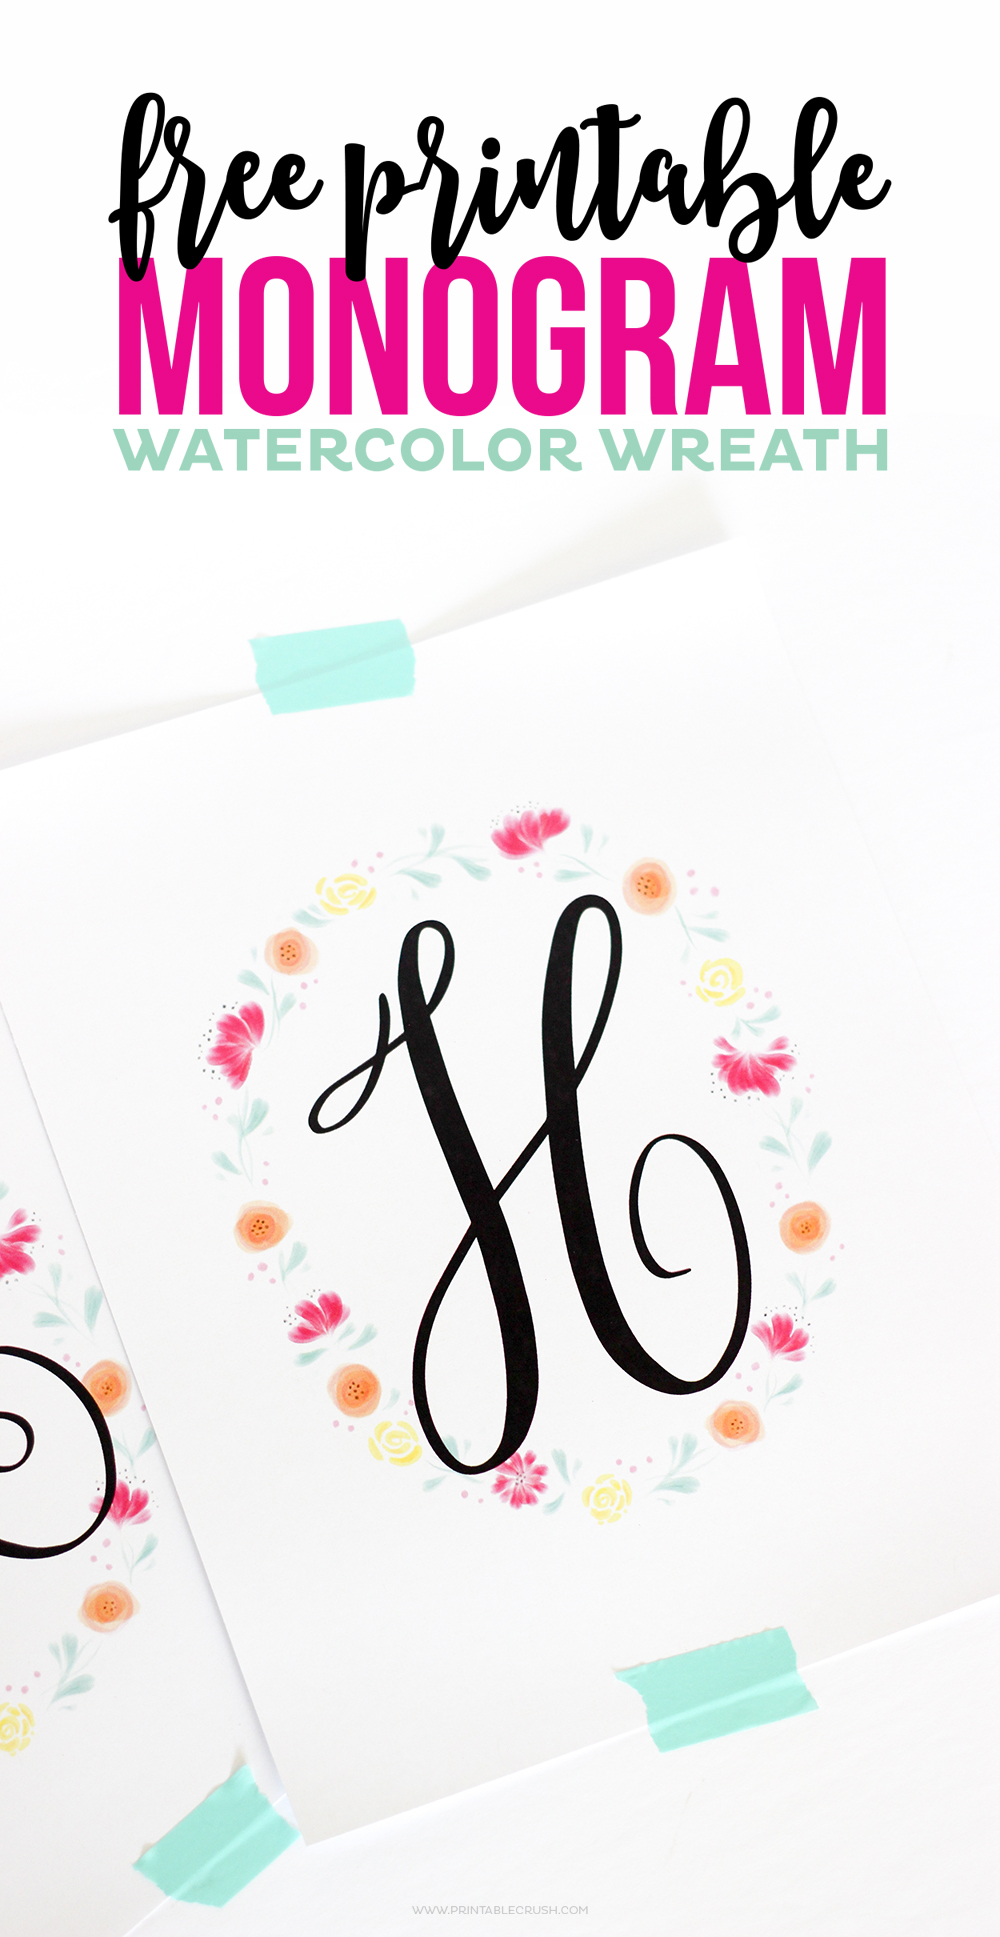 picture about Free Monogram Printable called Free of charge Printable Watercolor Monogram Wreaths - Printable Crush